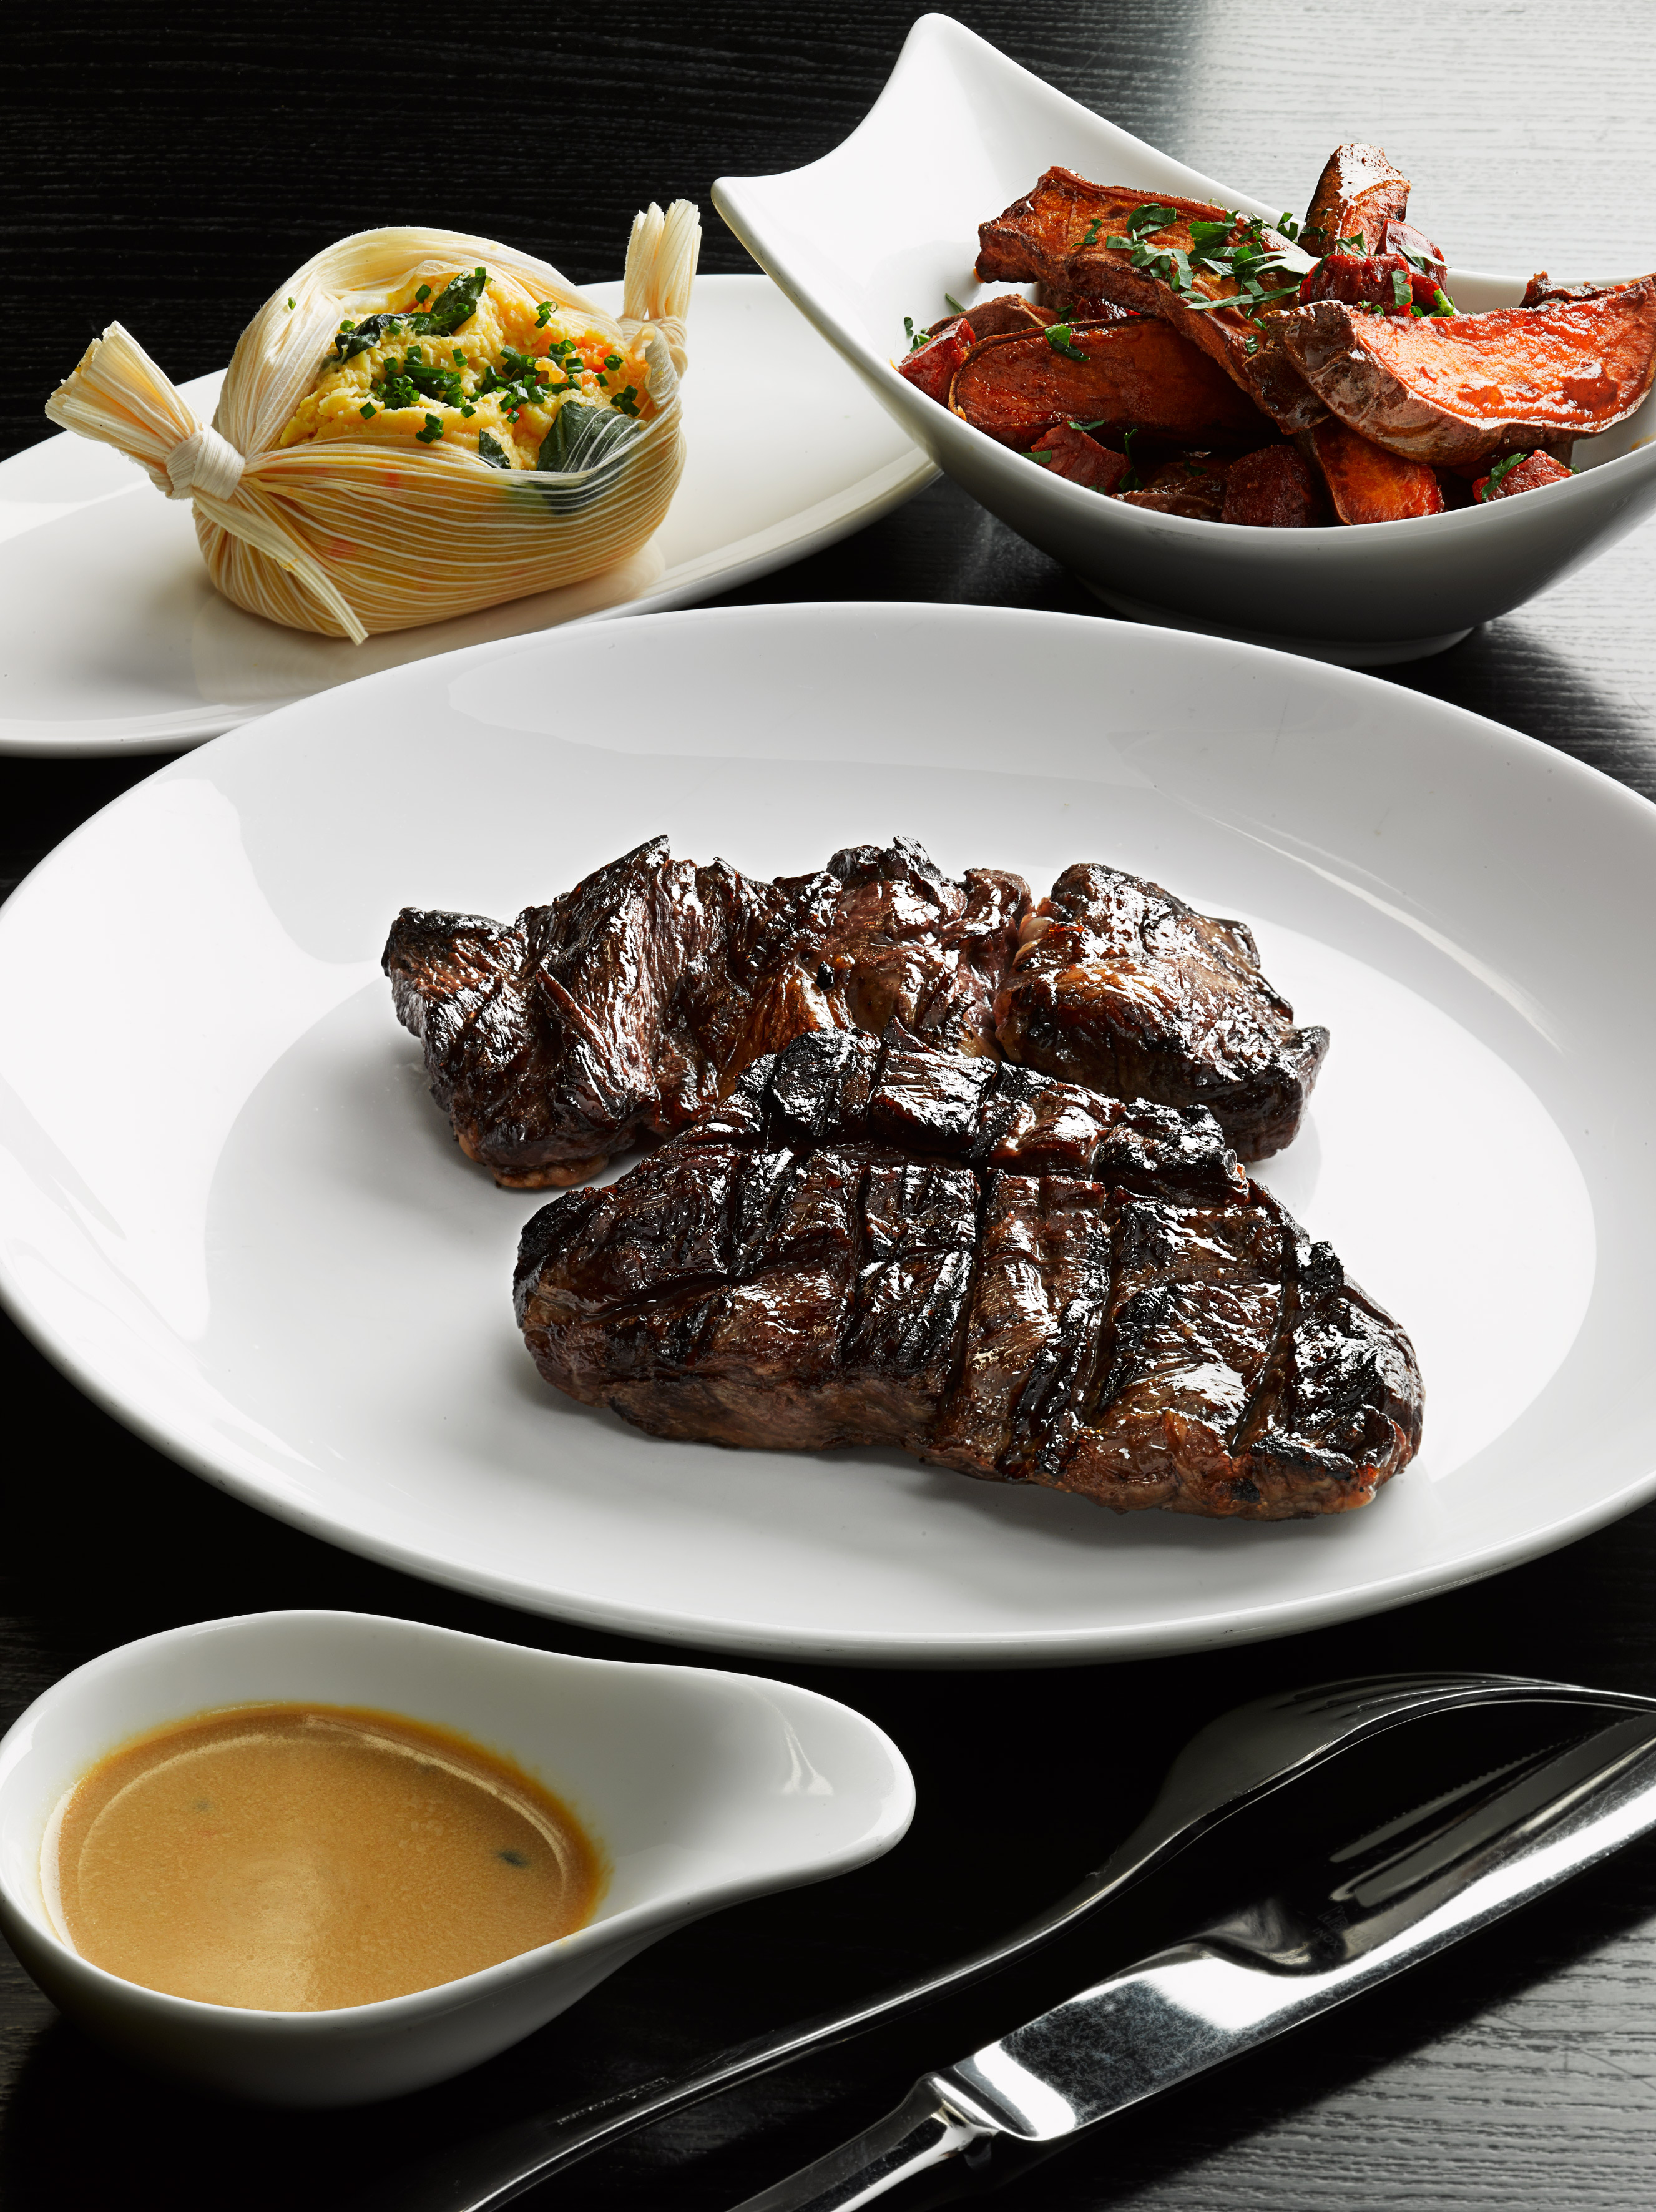 Where to find the best steaks in London